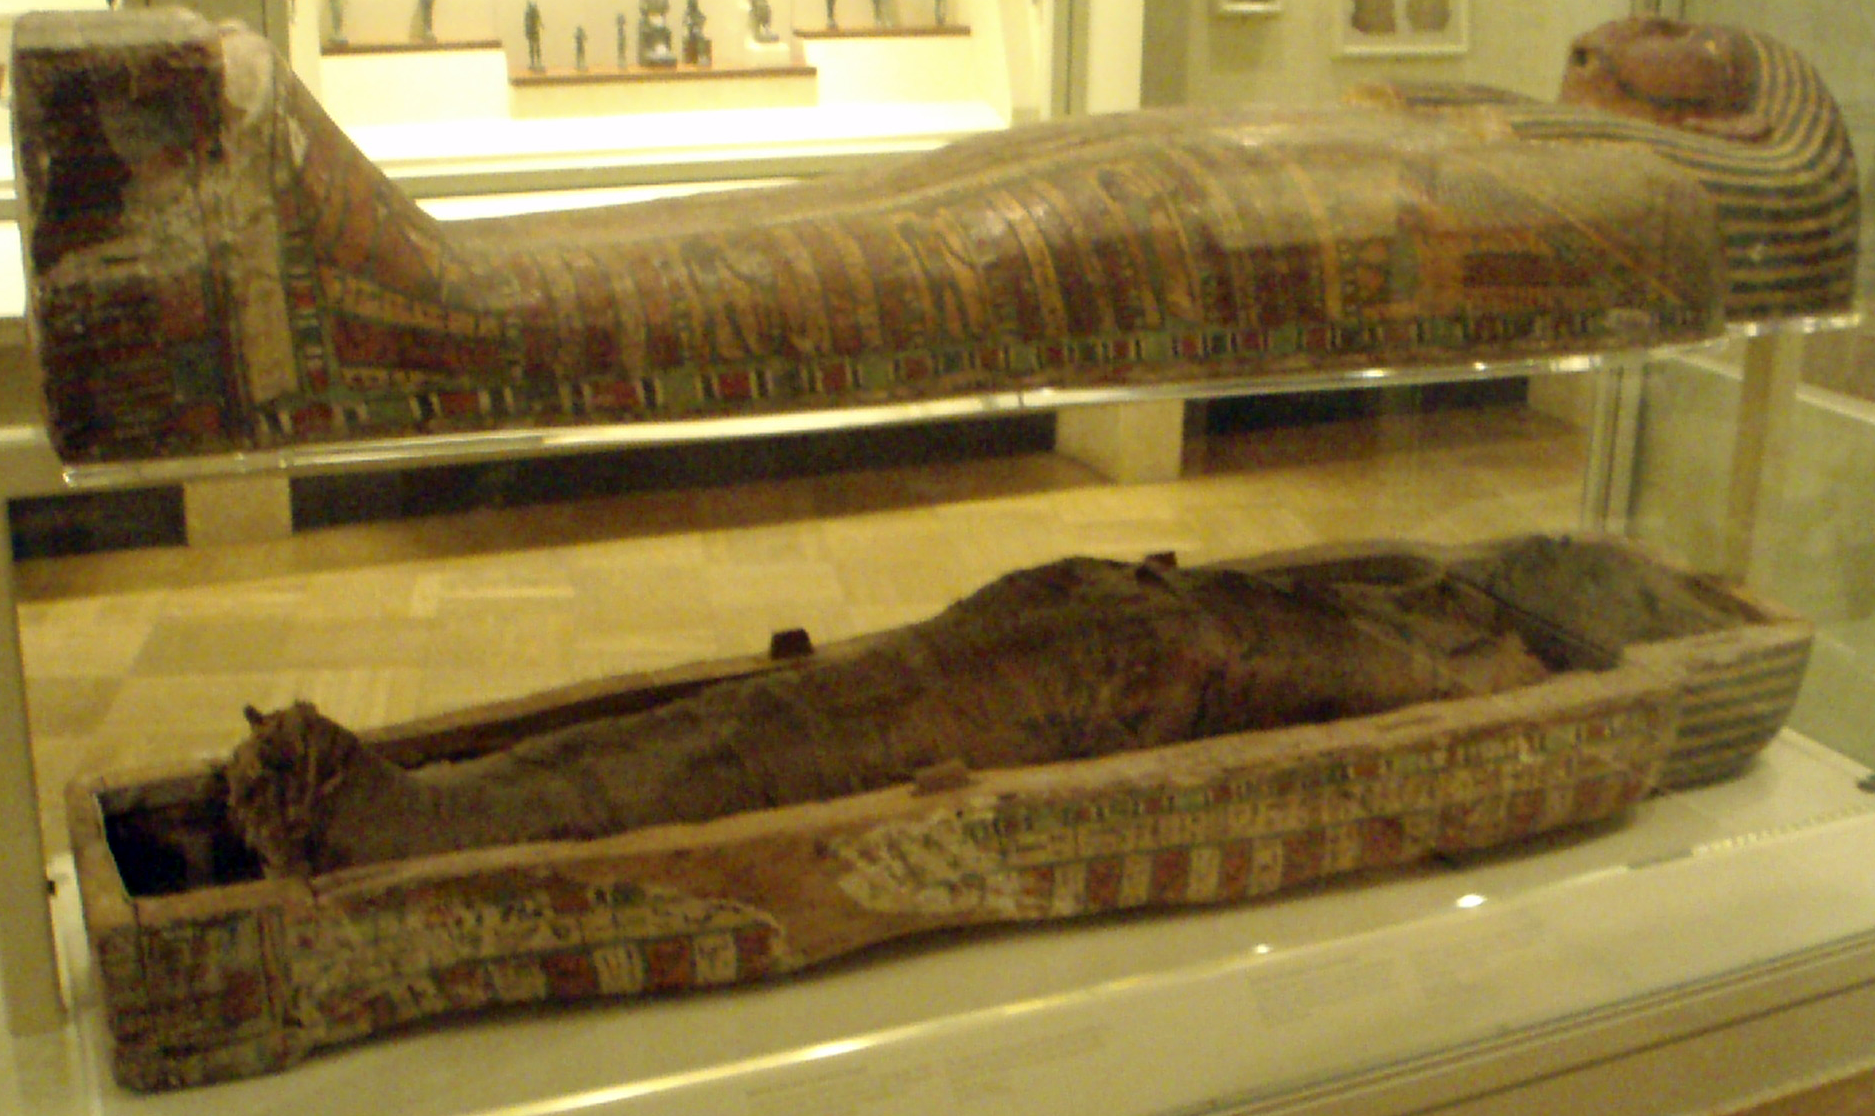 An Illustrated Description Of Mummies In Ancient Egypt